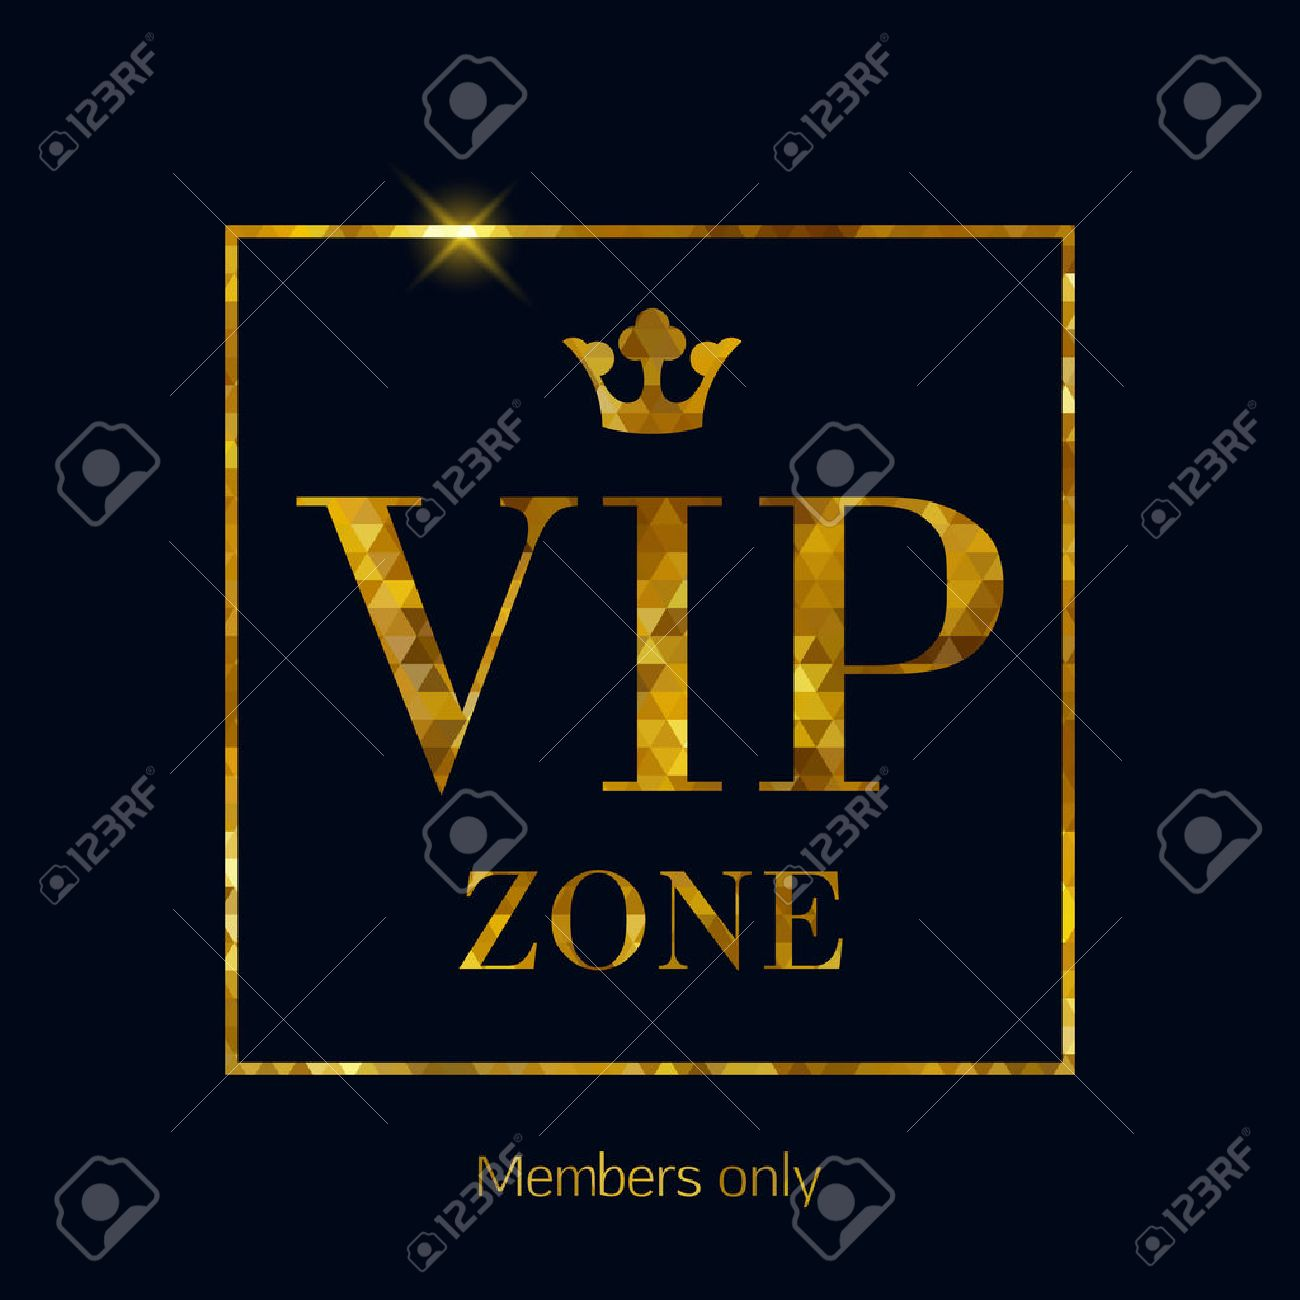 Vip zone abstract mosaic faceted background golden letters with vip zone abstract mosaic faceted background golden letters with royal crown good for party spiritdancerdesigns Image collections